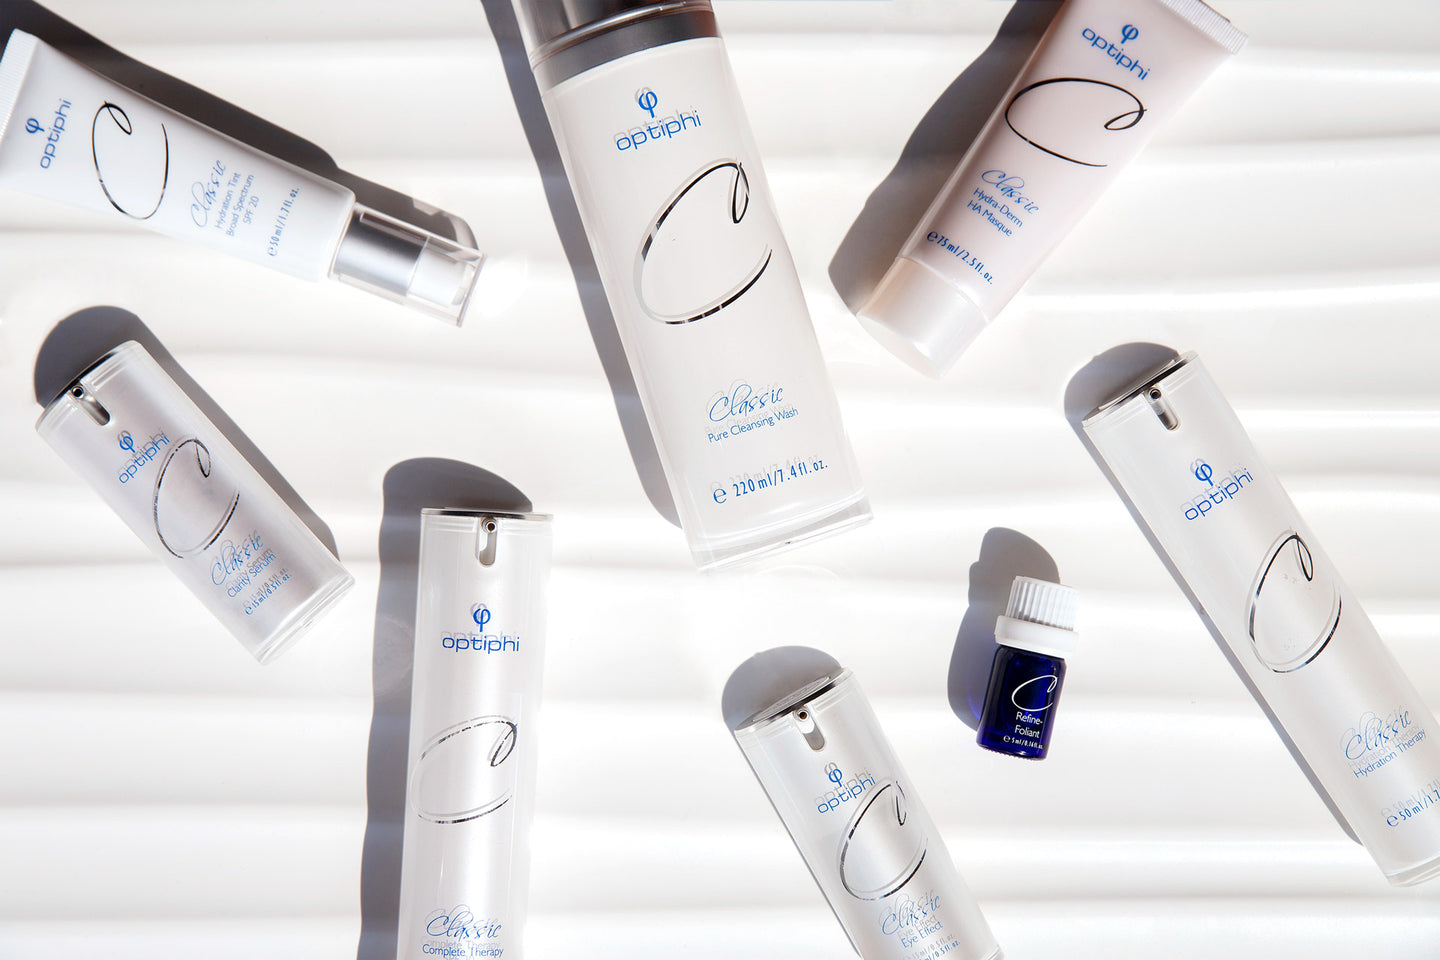 Classic skincare products that help balance and maintain skin vitality, and support the prevention of premature aging.